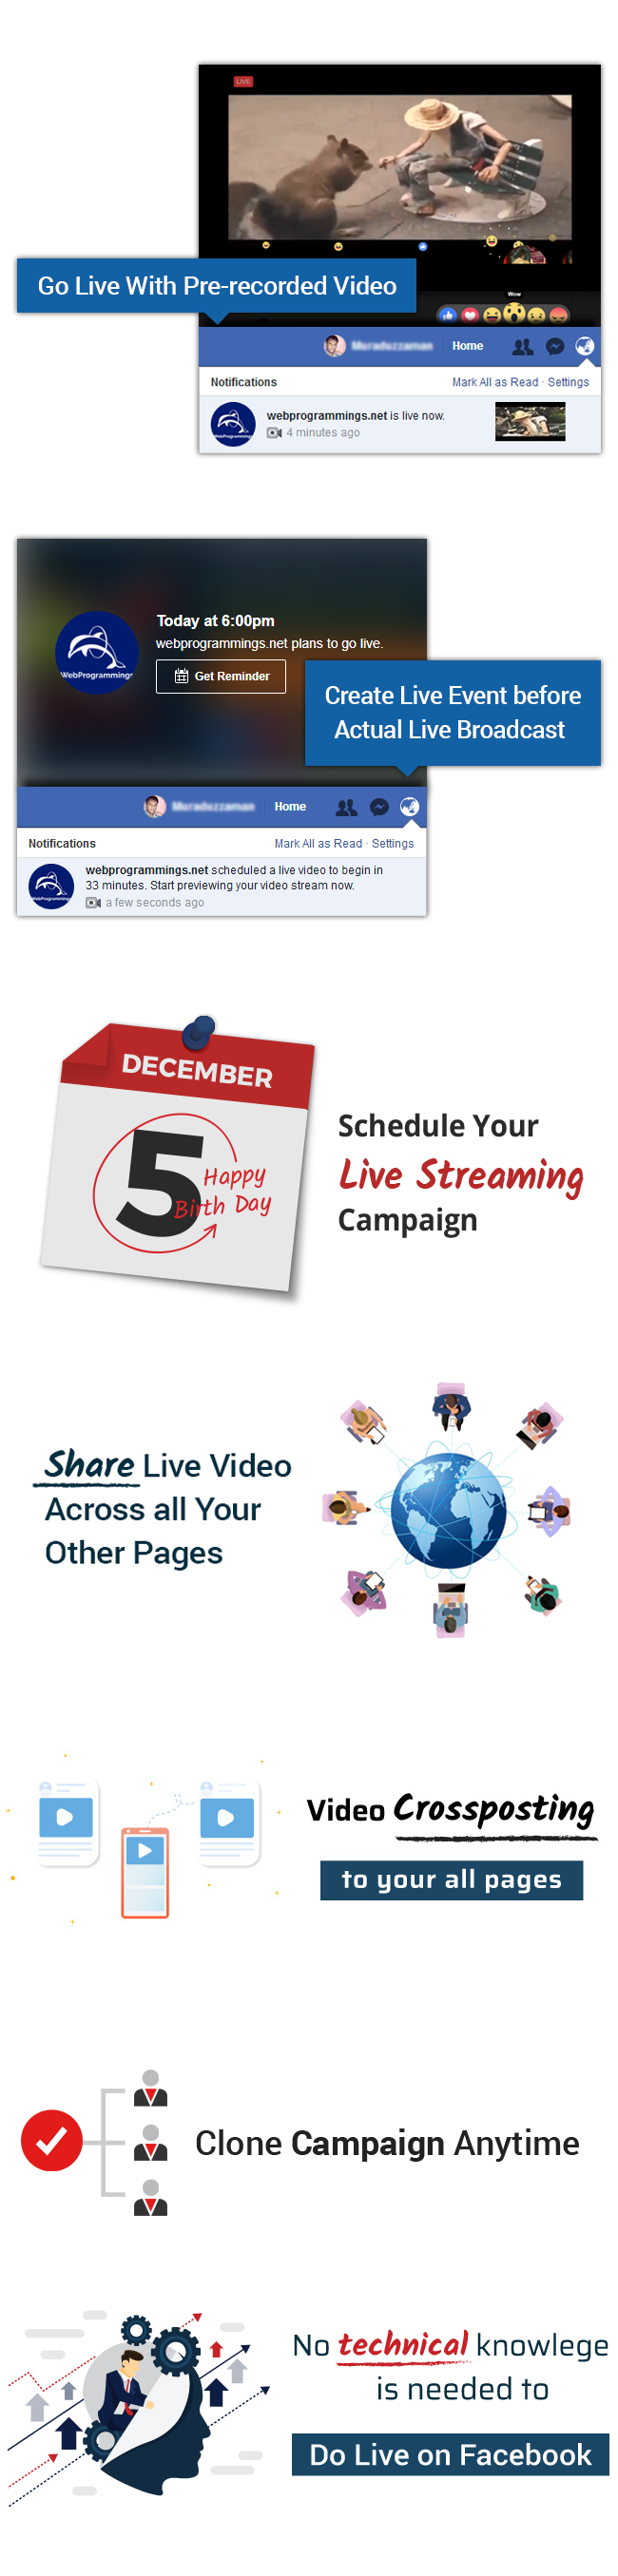 VidCasterLive - A XeroChat Add-on : Facebook Live Streaming With Pre-recorded Video - 5